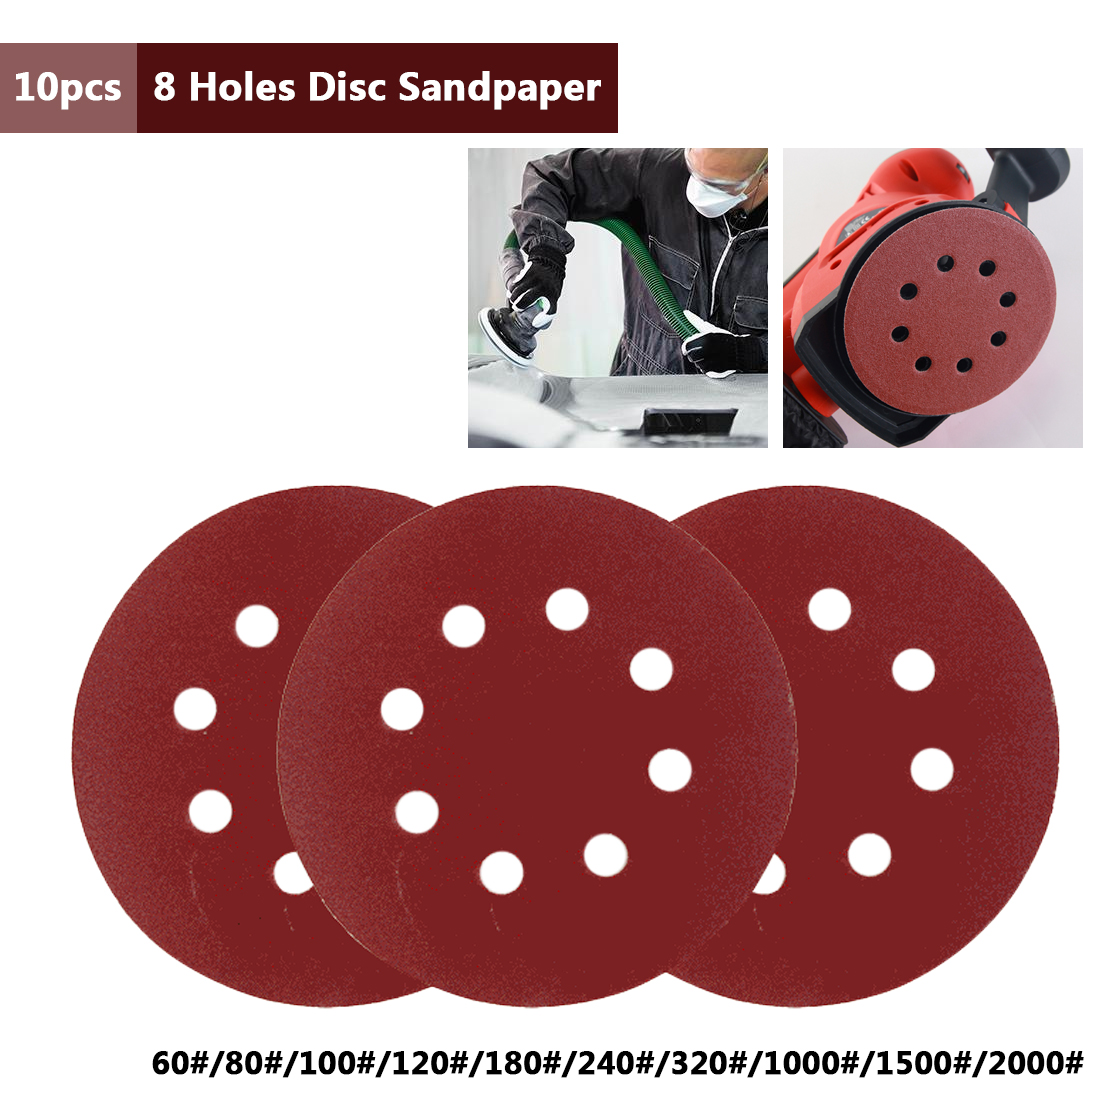 10pcs 125mm/5'' Sanding Polishing Sheet Sandpaper Round Shape Sander Discs  60-2000 Grit Polish Pad